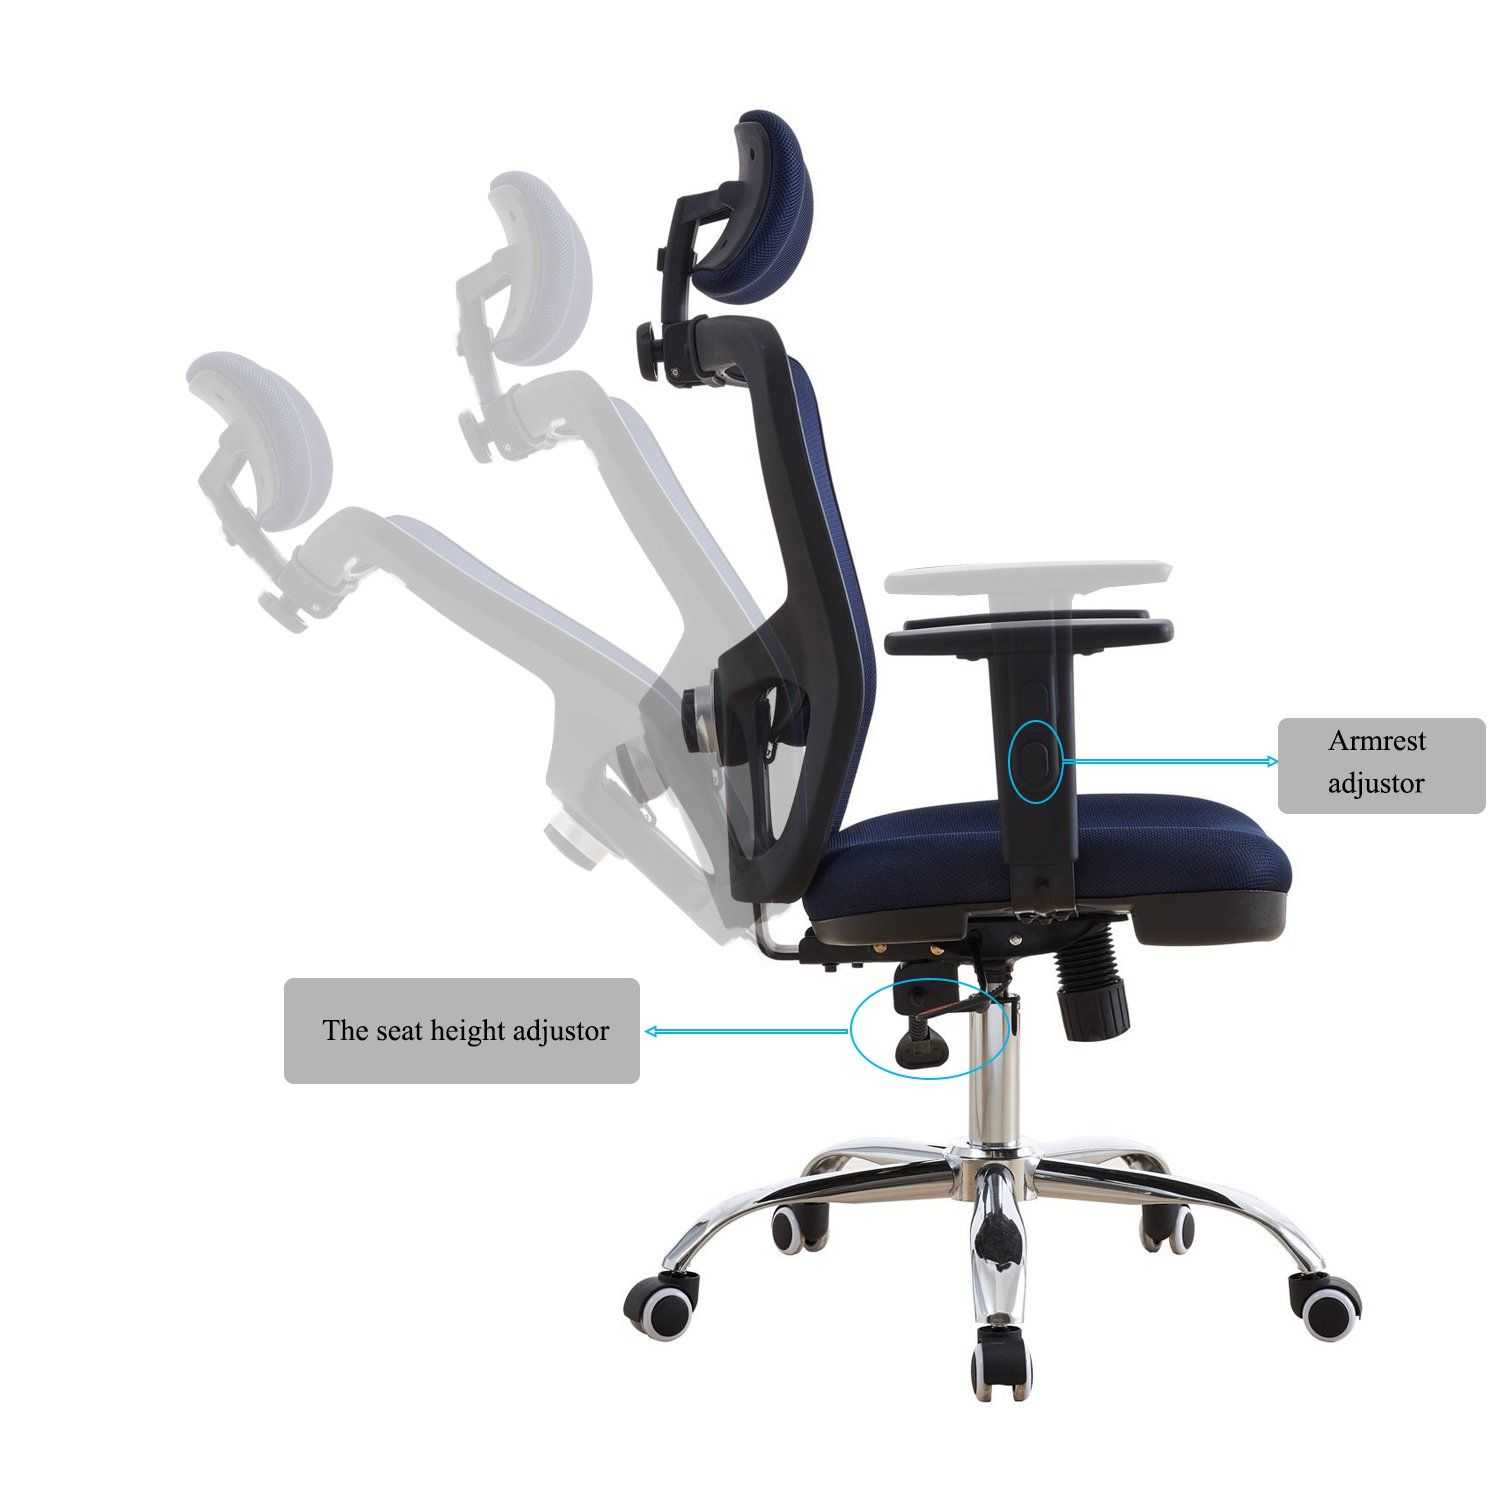 High back mesh office chair with adjustable headrest and